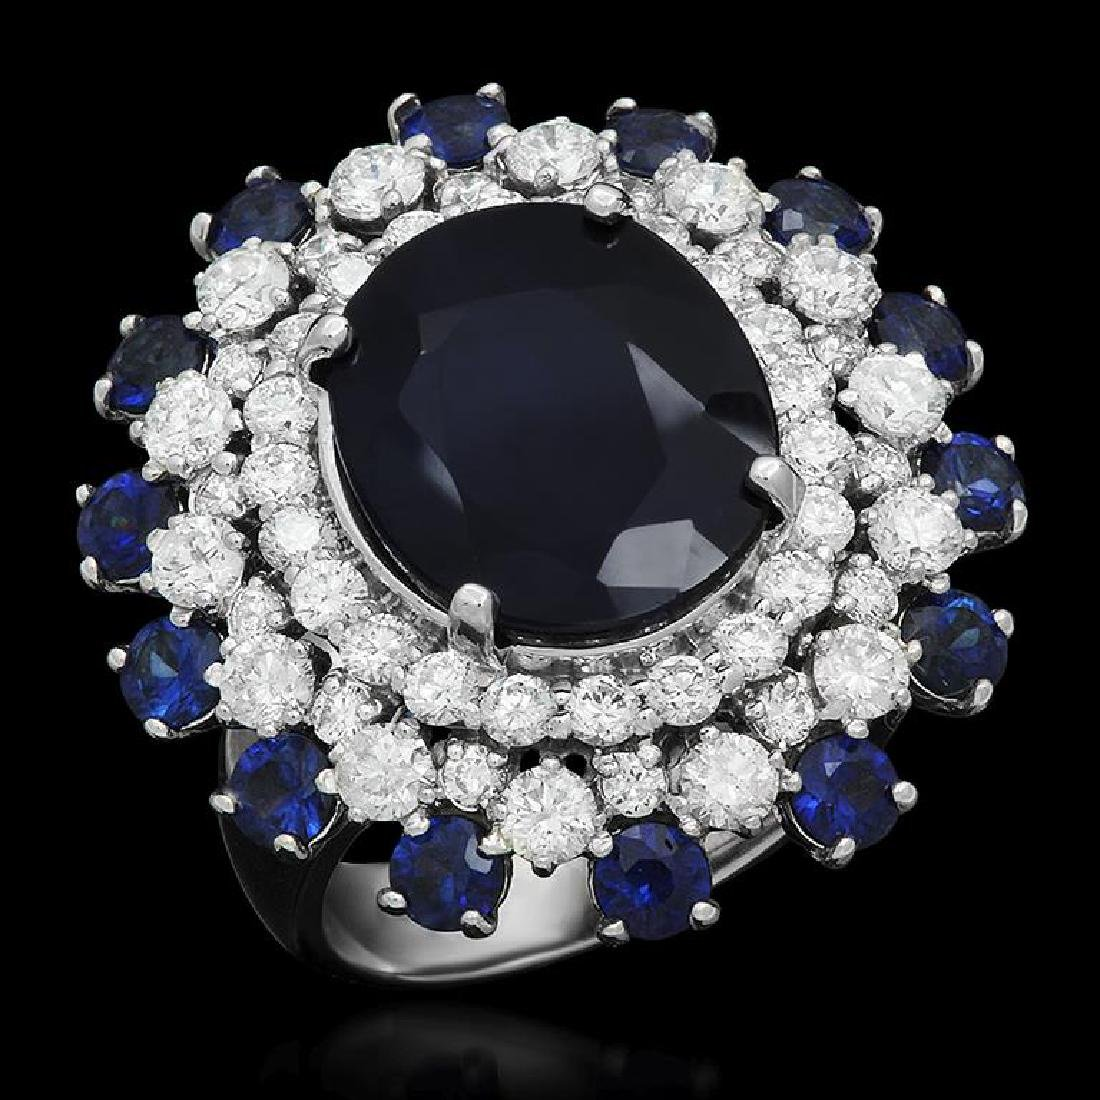 14K Gold 9.97ct Sapphire 2.31ct Diamond Ring